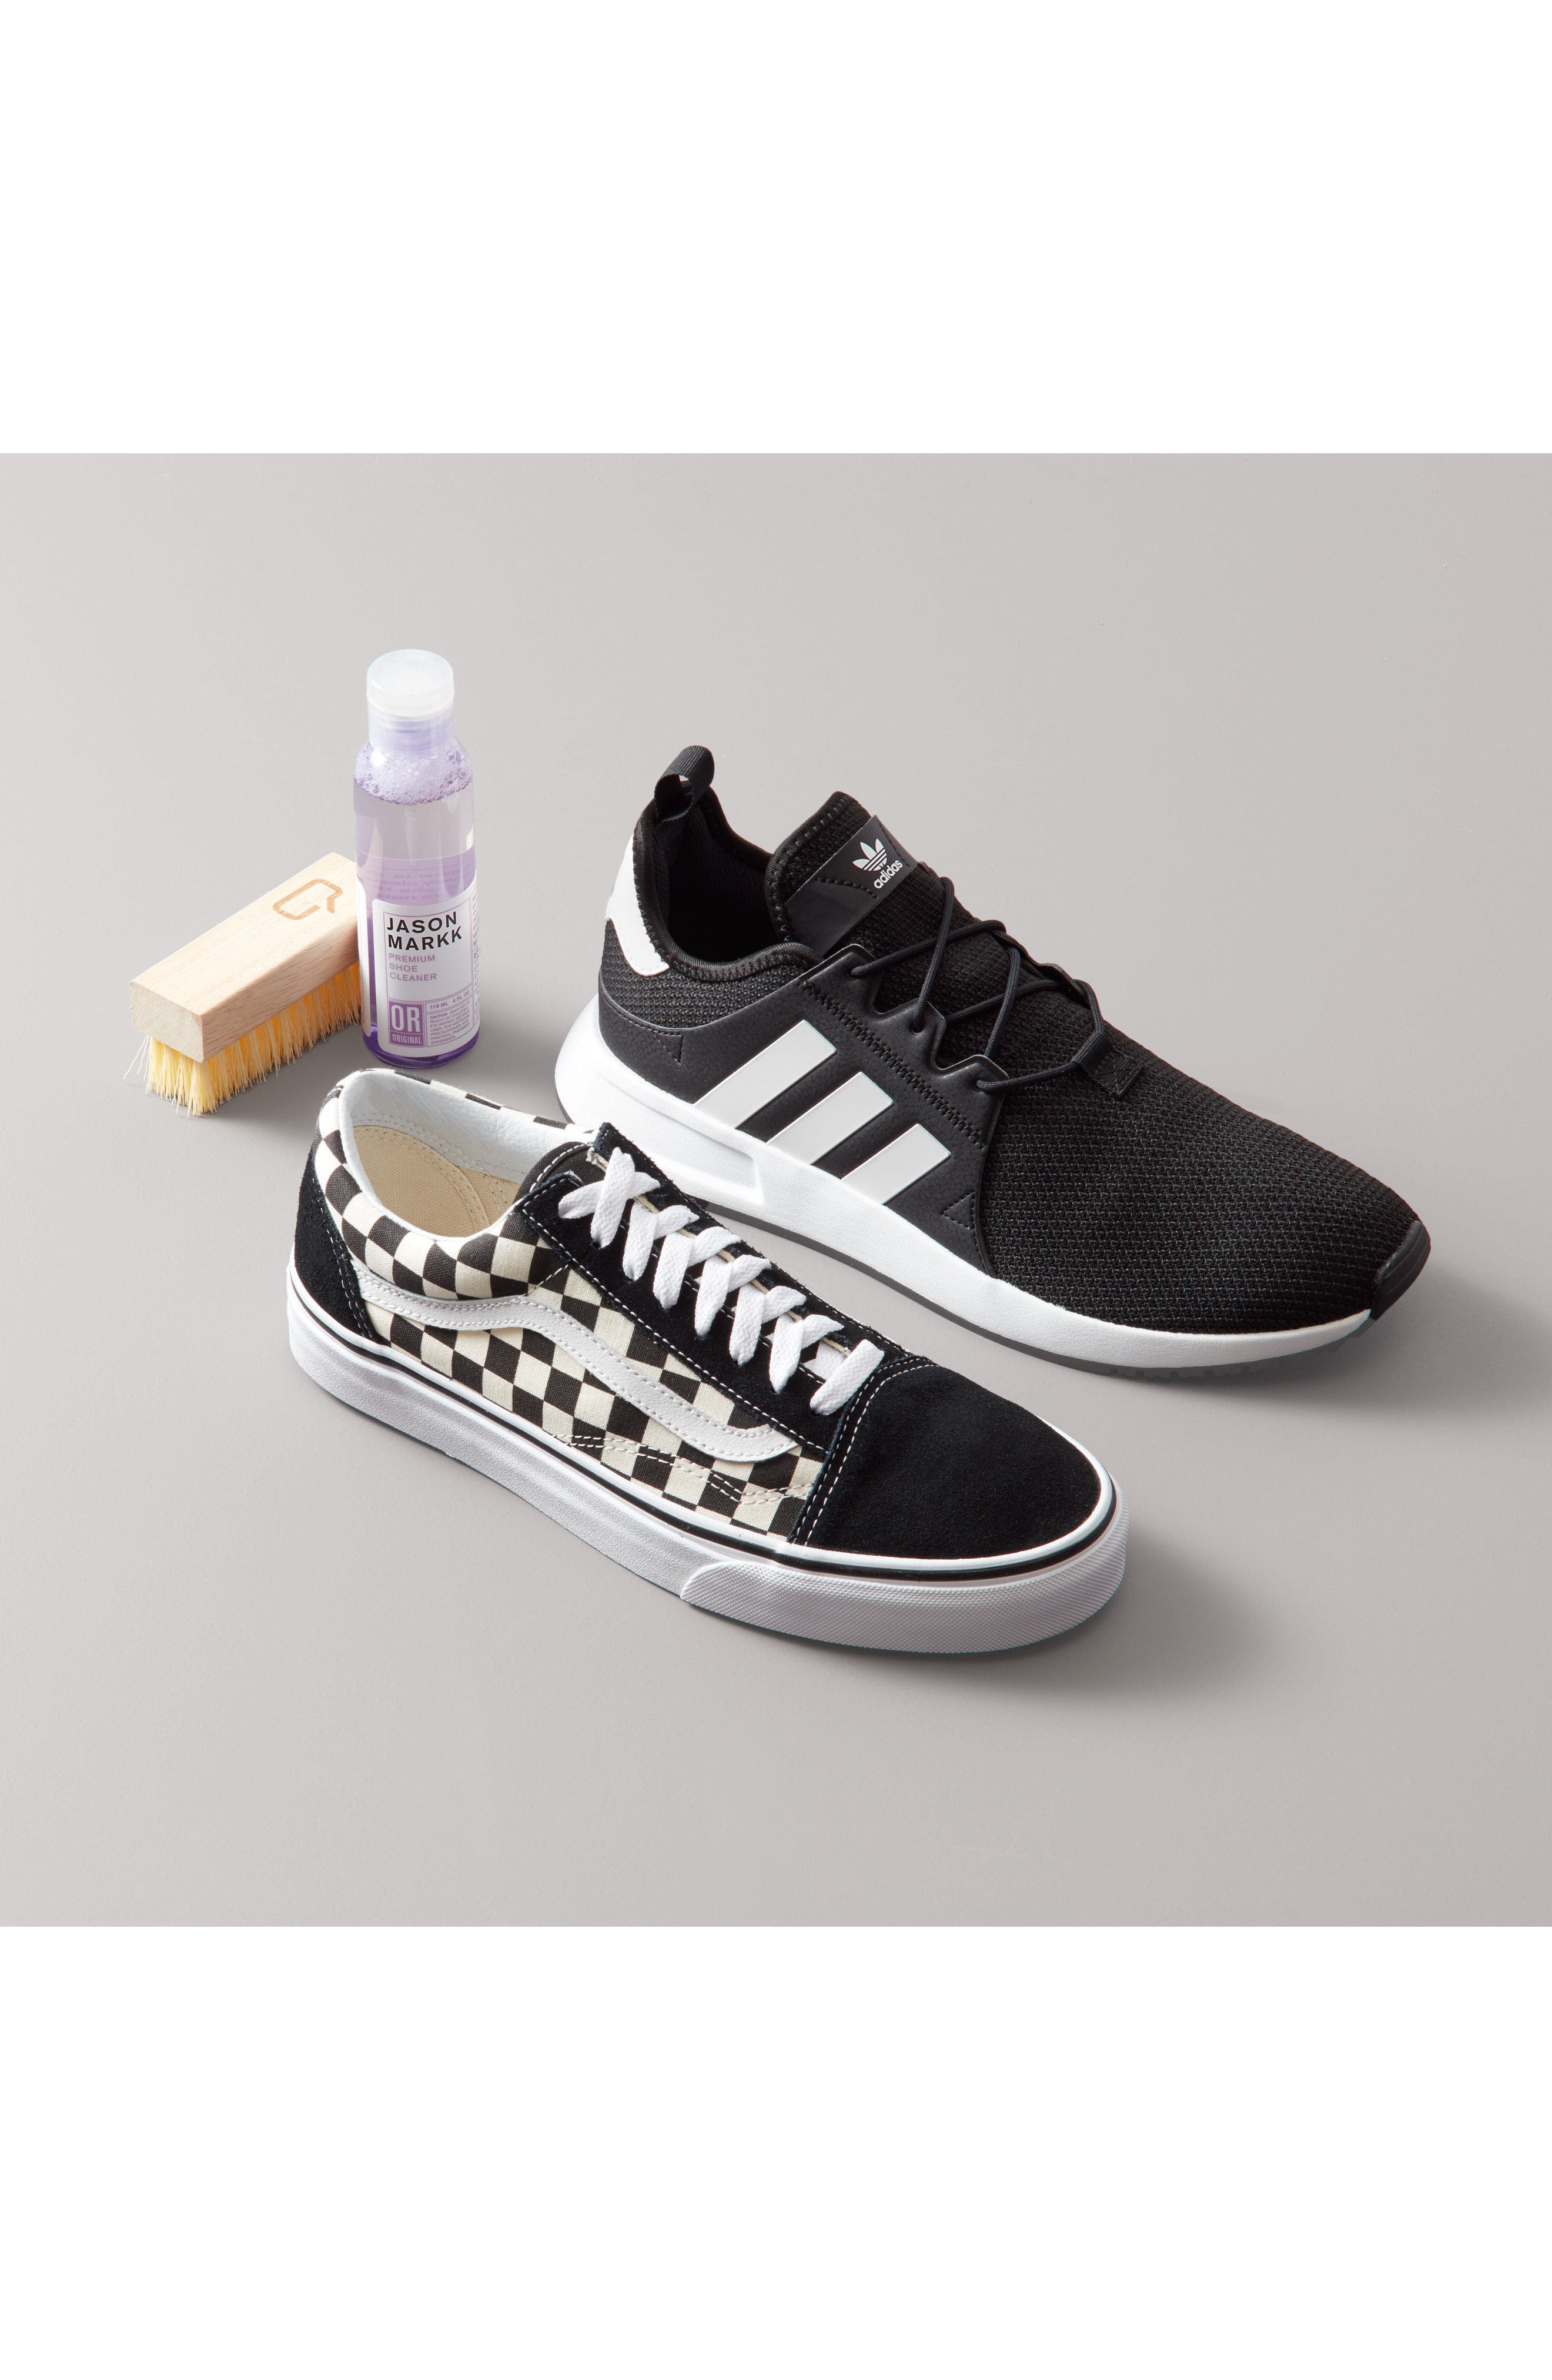 'Essential' Shoe Cleaning Kit,                             Alternate thumbnail 2, color,